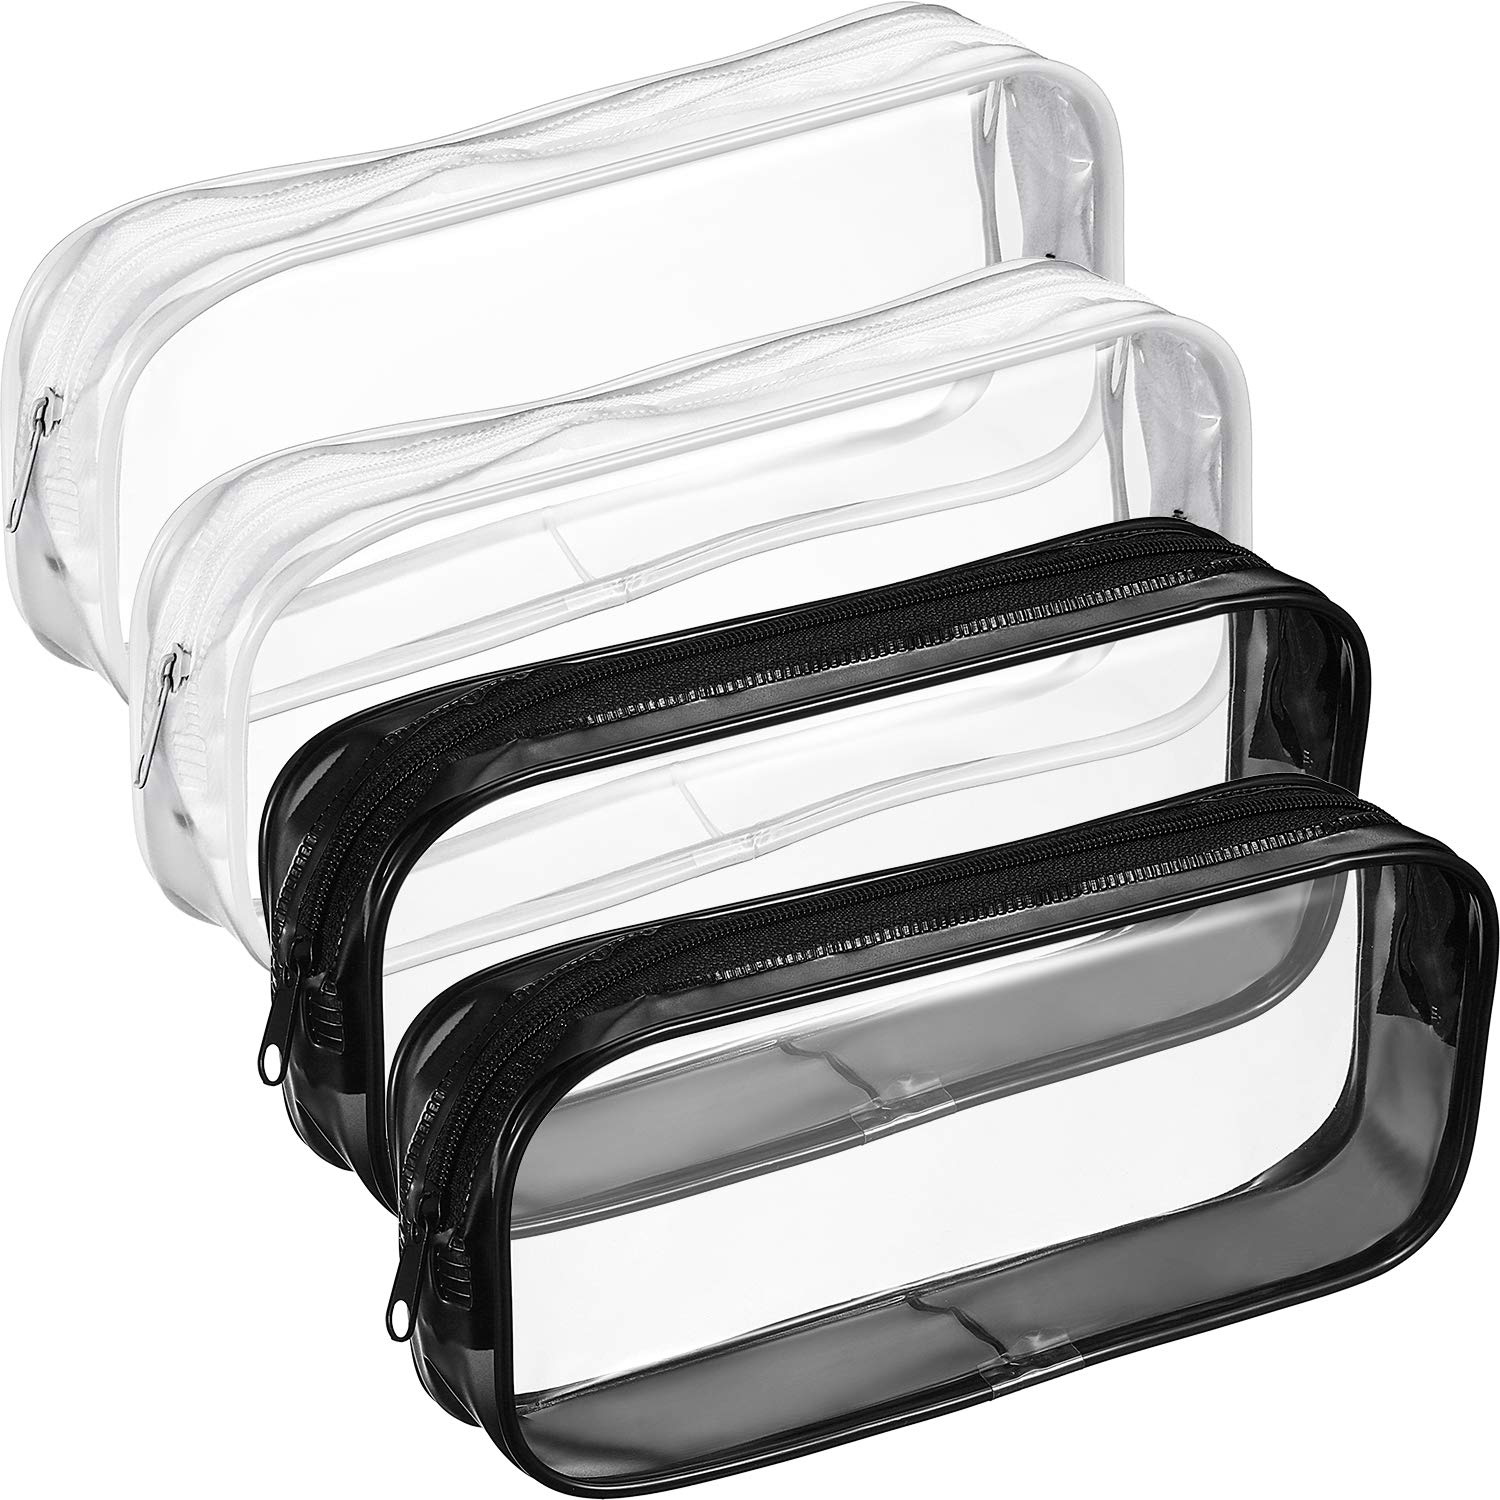 4 Pieces Clear PVC Zipper Pen Pencil Case, Big Capacity Pencil Bag Makeup Pouch Students Stationery, Black and White Tatuo